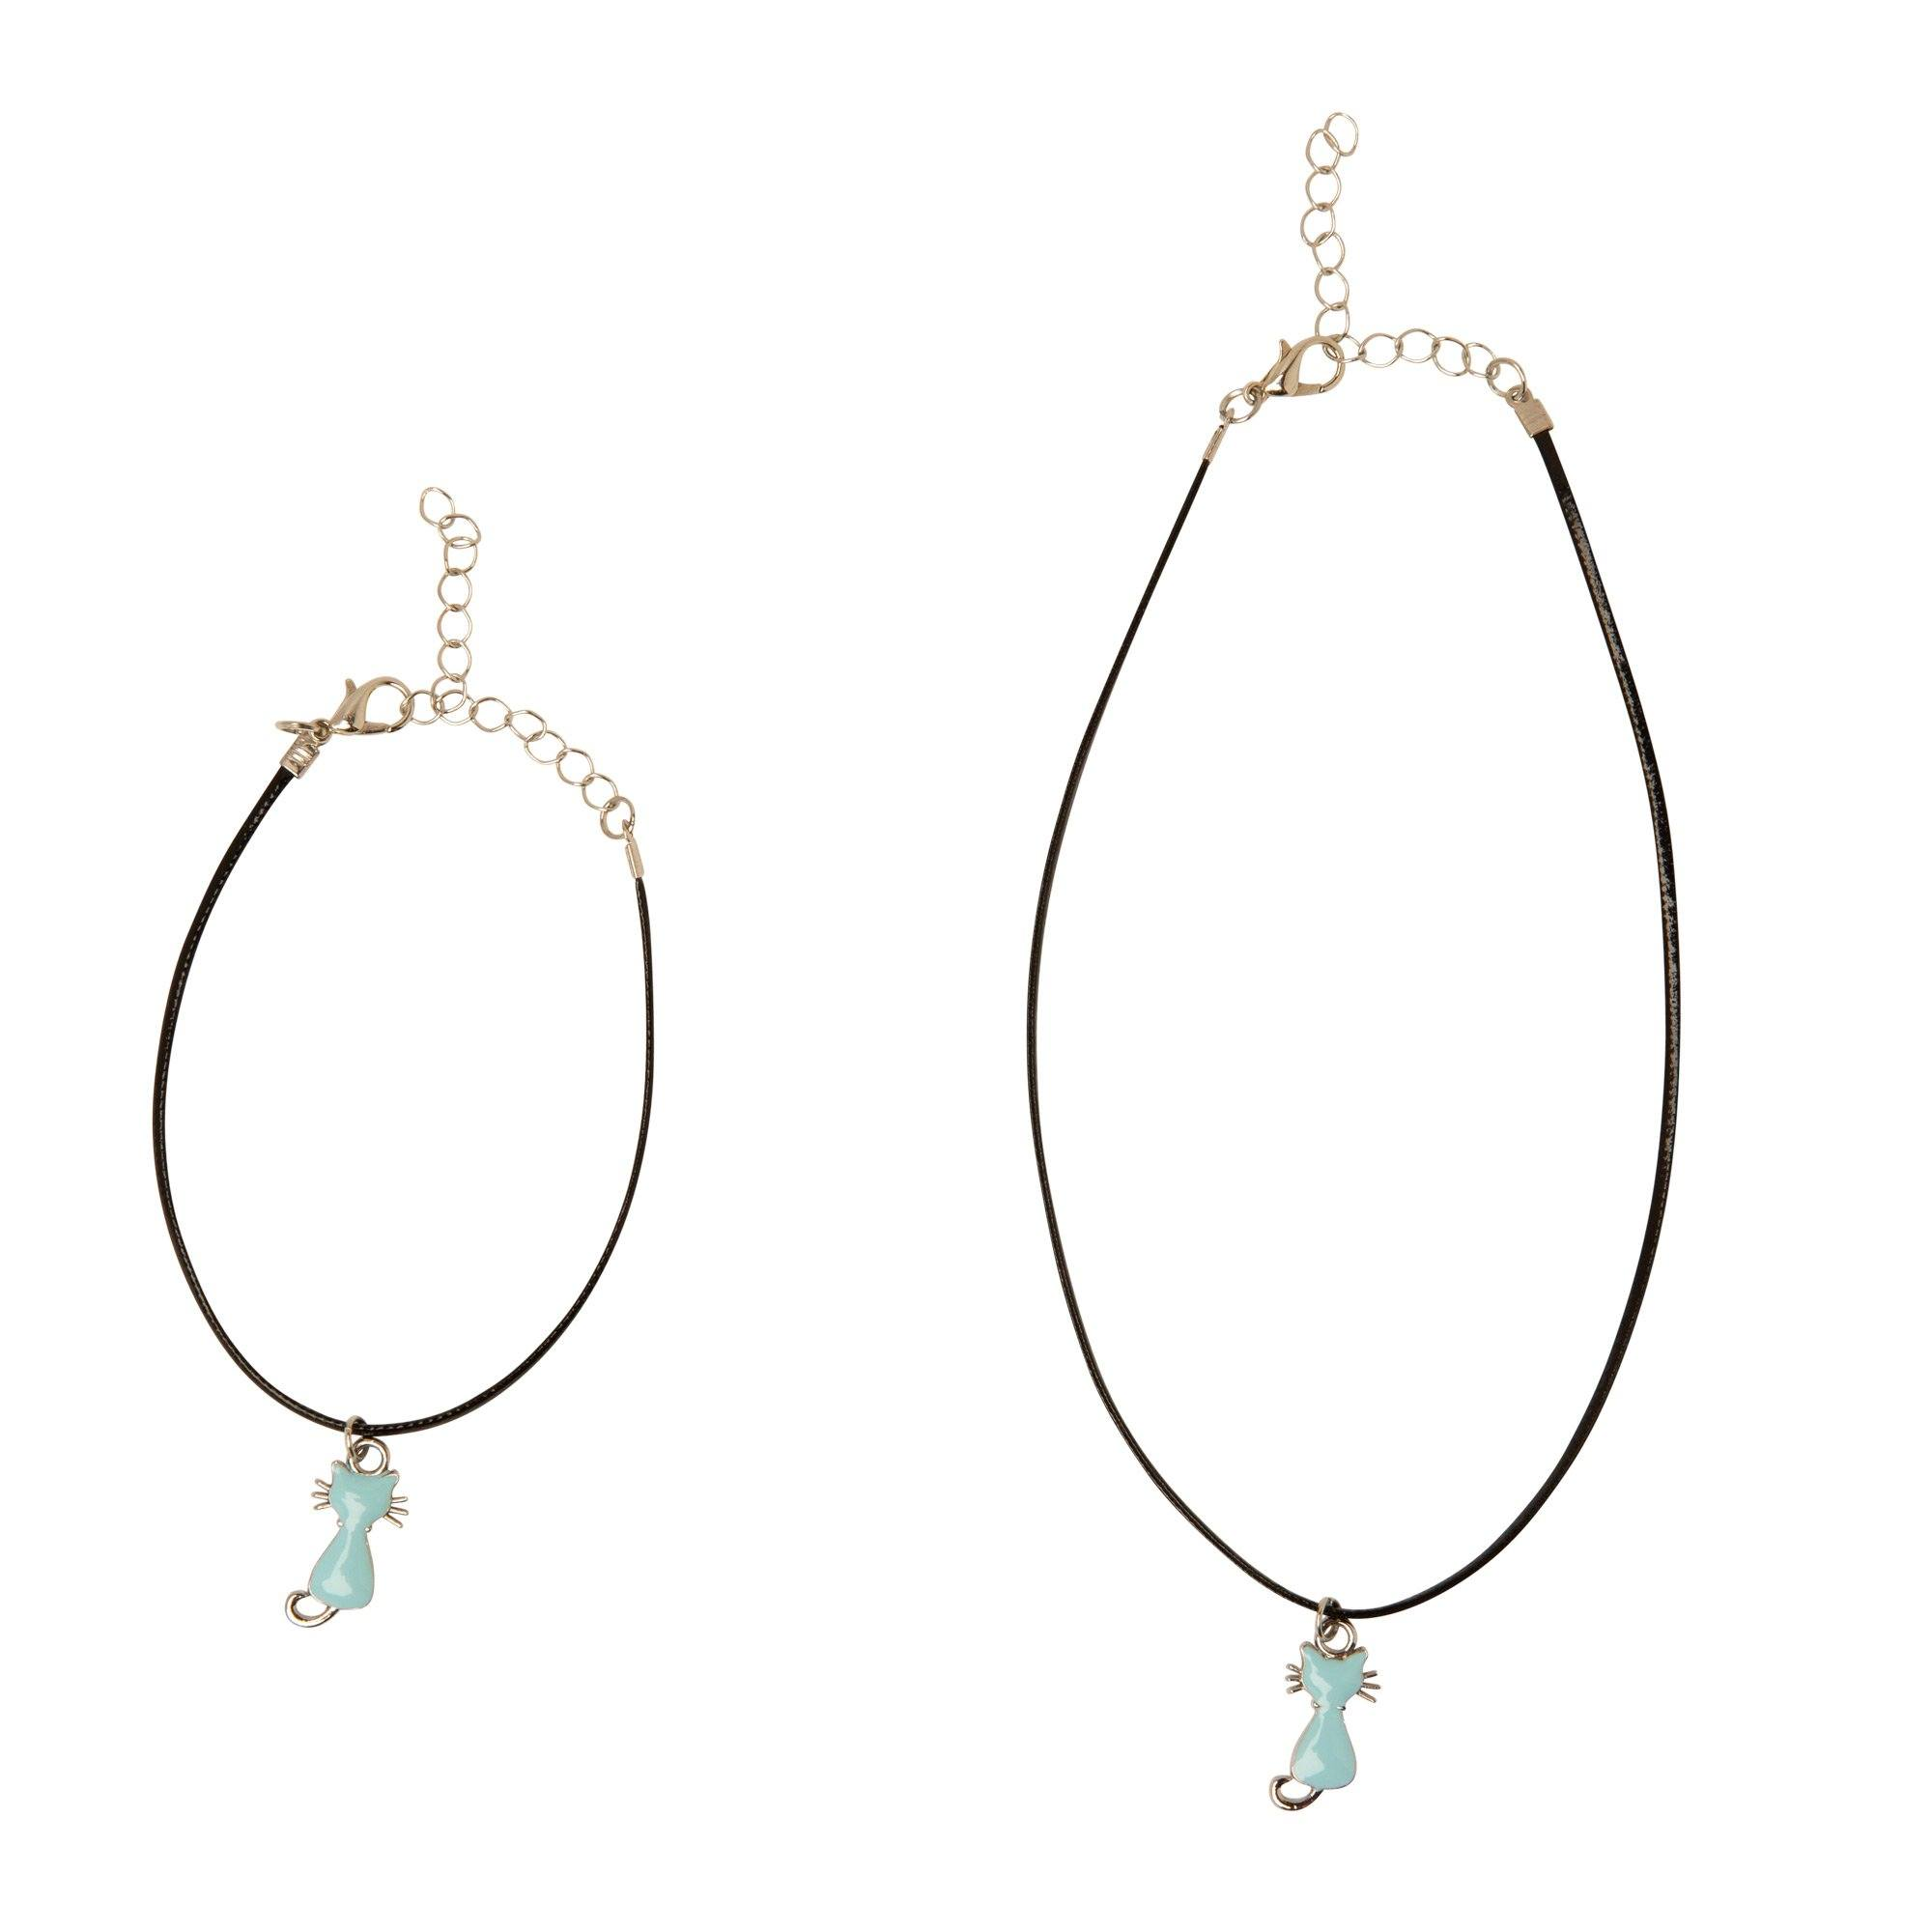 Purrfect Necklace Set